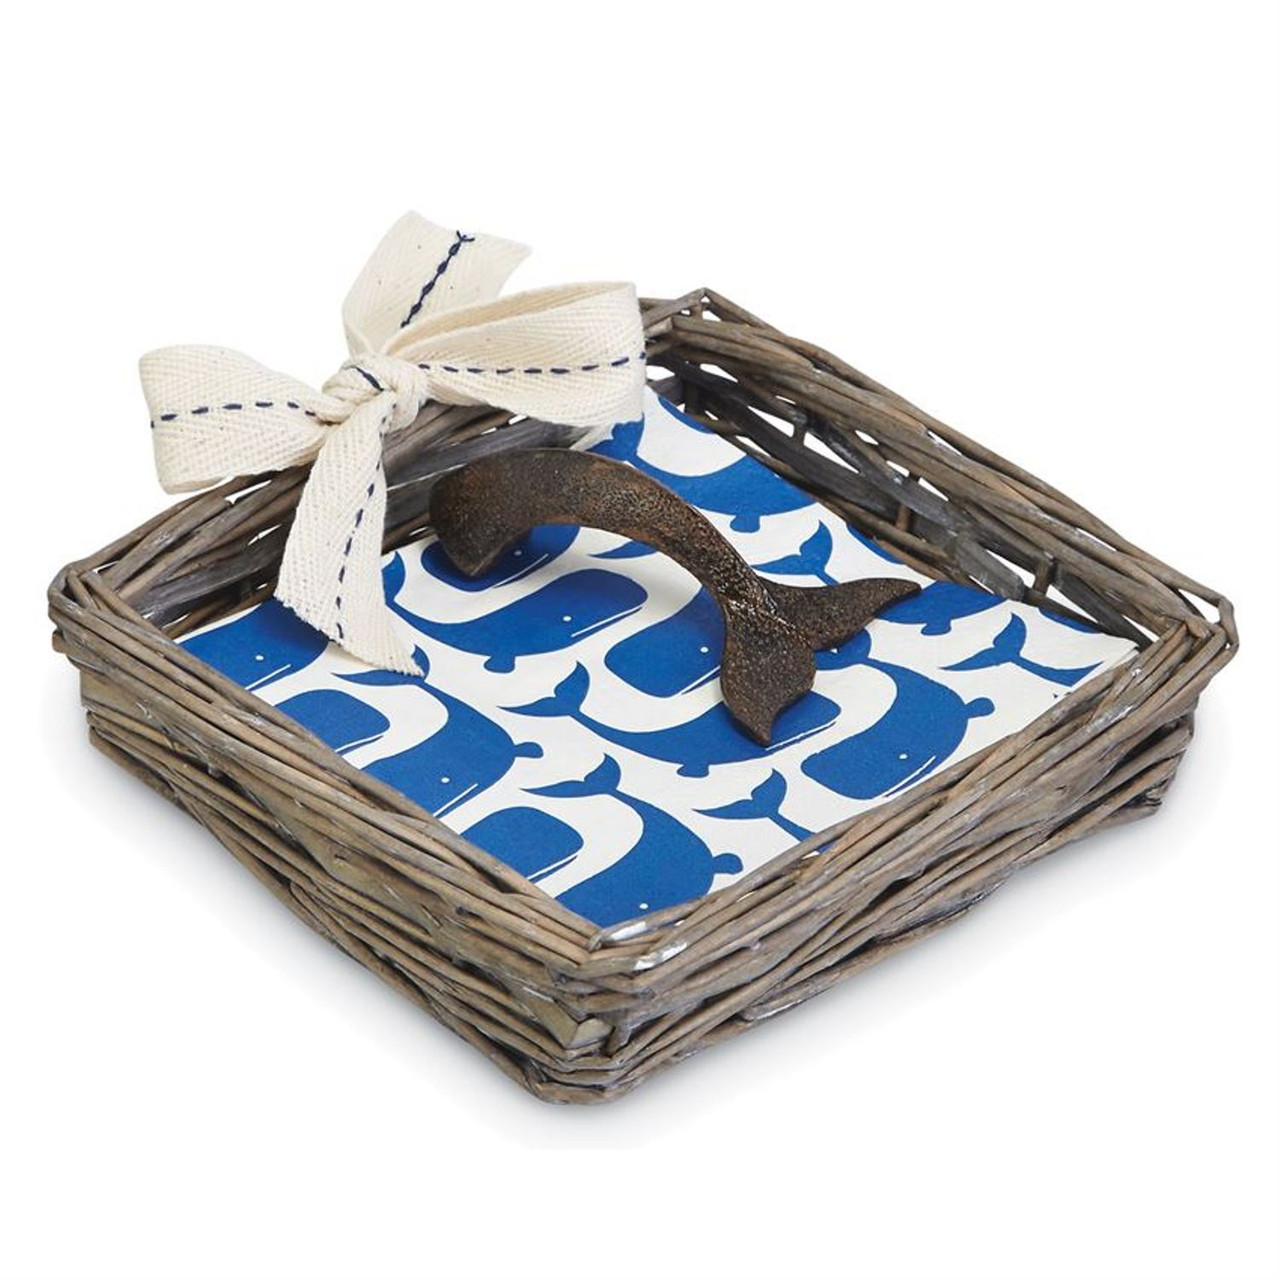 Mud Pie Under the Influence Paper Cocktail Napkins with Seagrass Basket Set